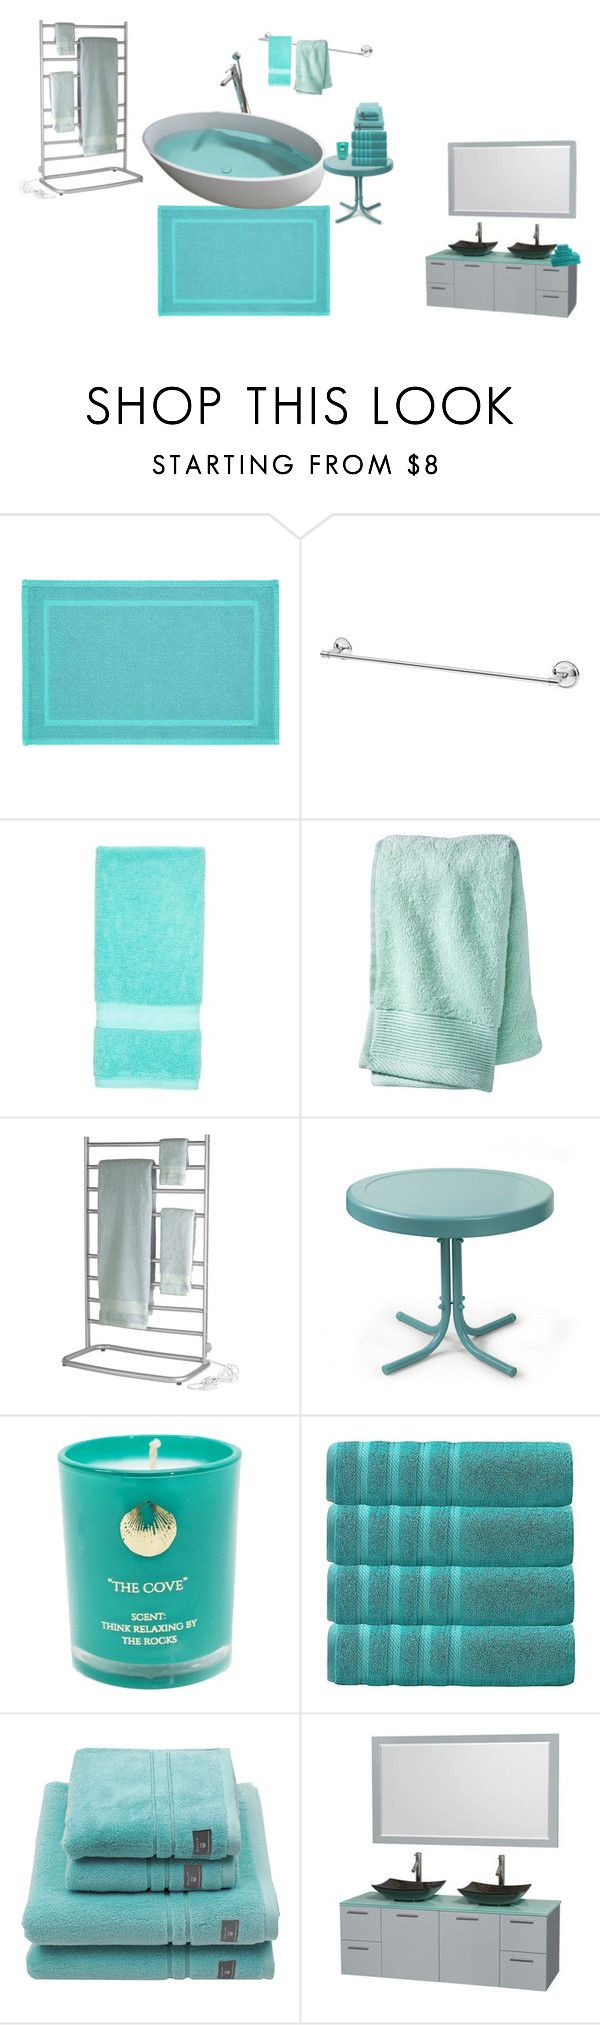 """""""teal bathroom"""" by effyswanhaze ❤ liked on Polyvore featuring interior, interiors, interior design, home, home decor, interior decorating, GANT, Southern Tide, Nate Berkus and Jerdon"""